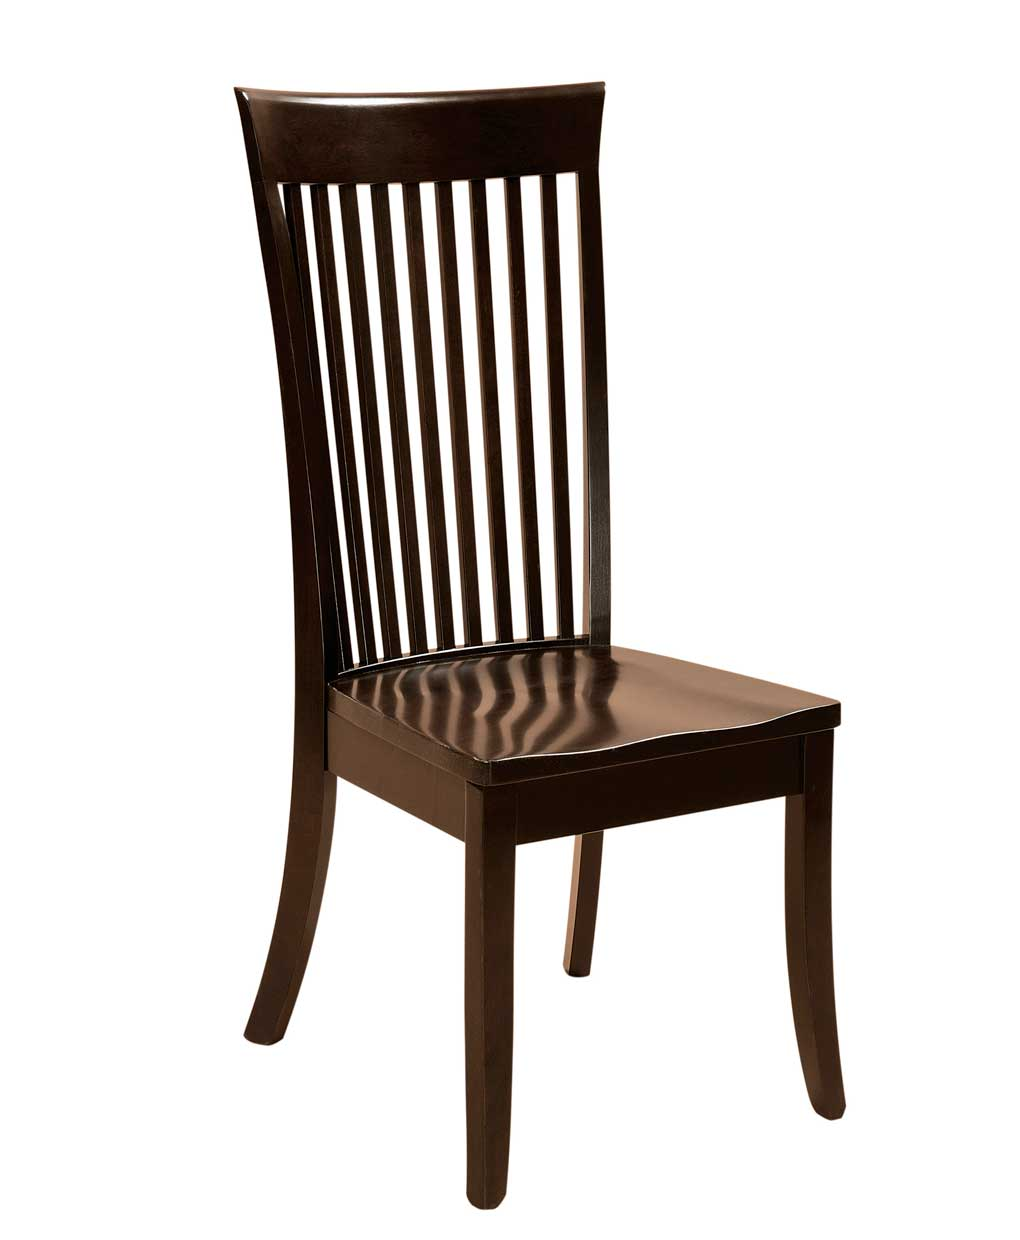 Carlisle shaker dining chairs amish direct furniture for Restaurant furniture